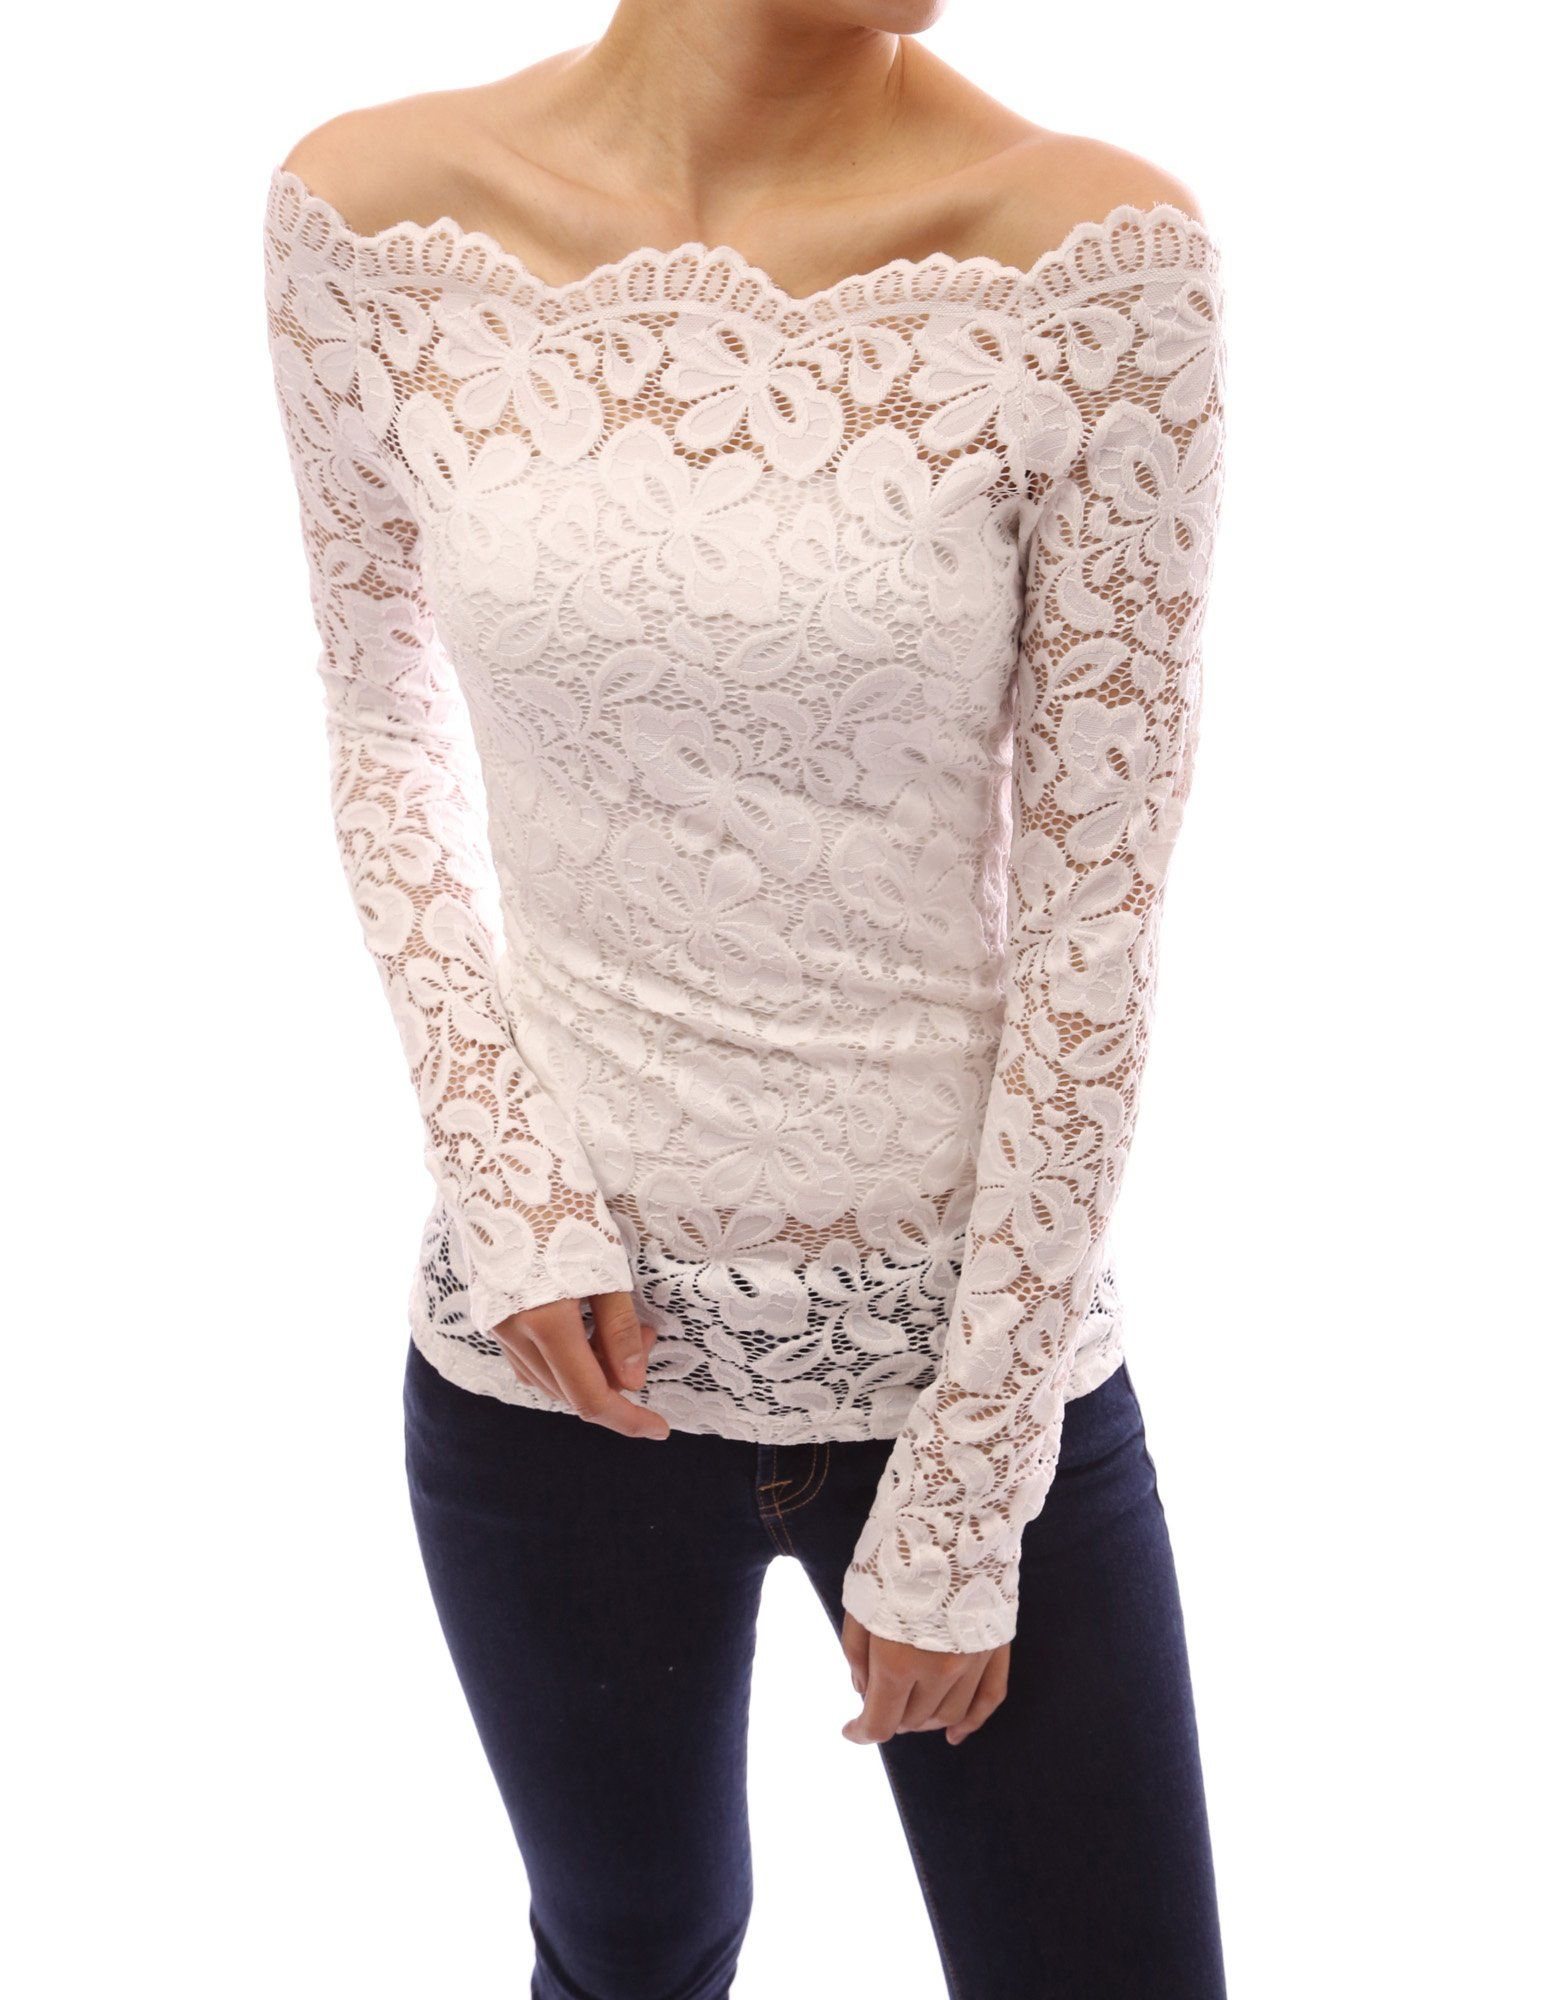 76d2bfde543 would have to dye it) PattyBoutik Floral Lace Scallop Off Shoulder ...